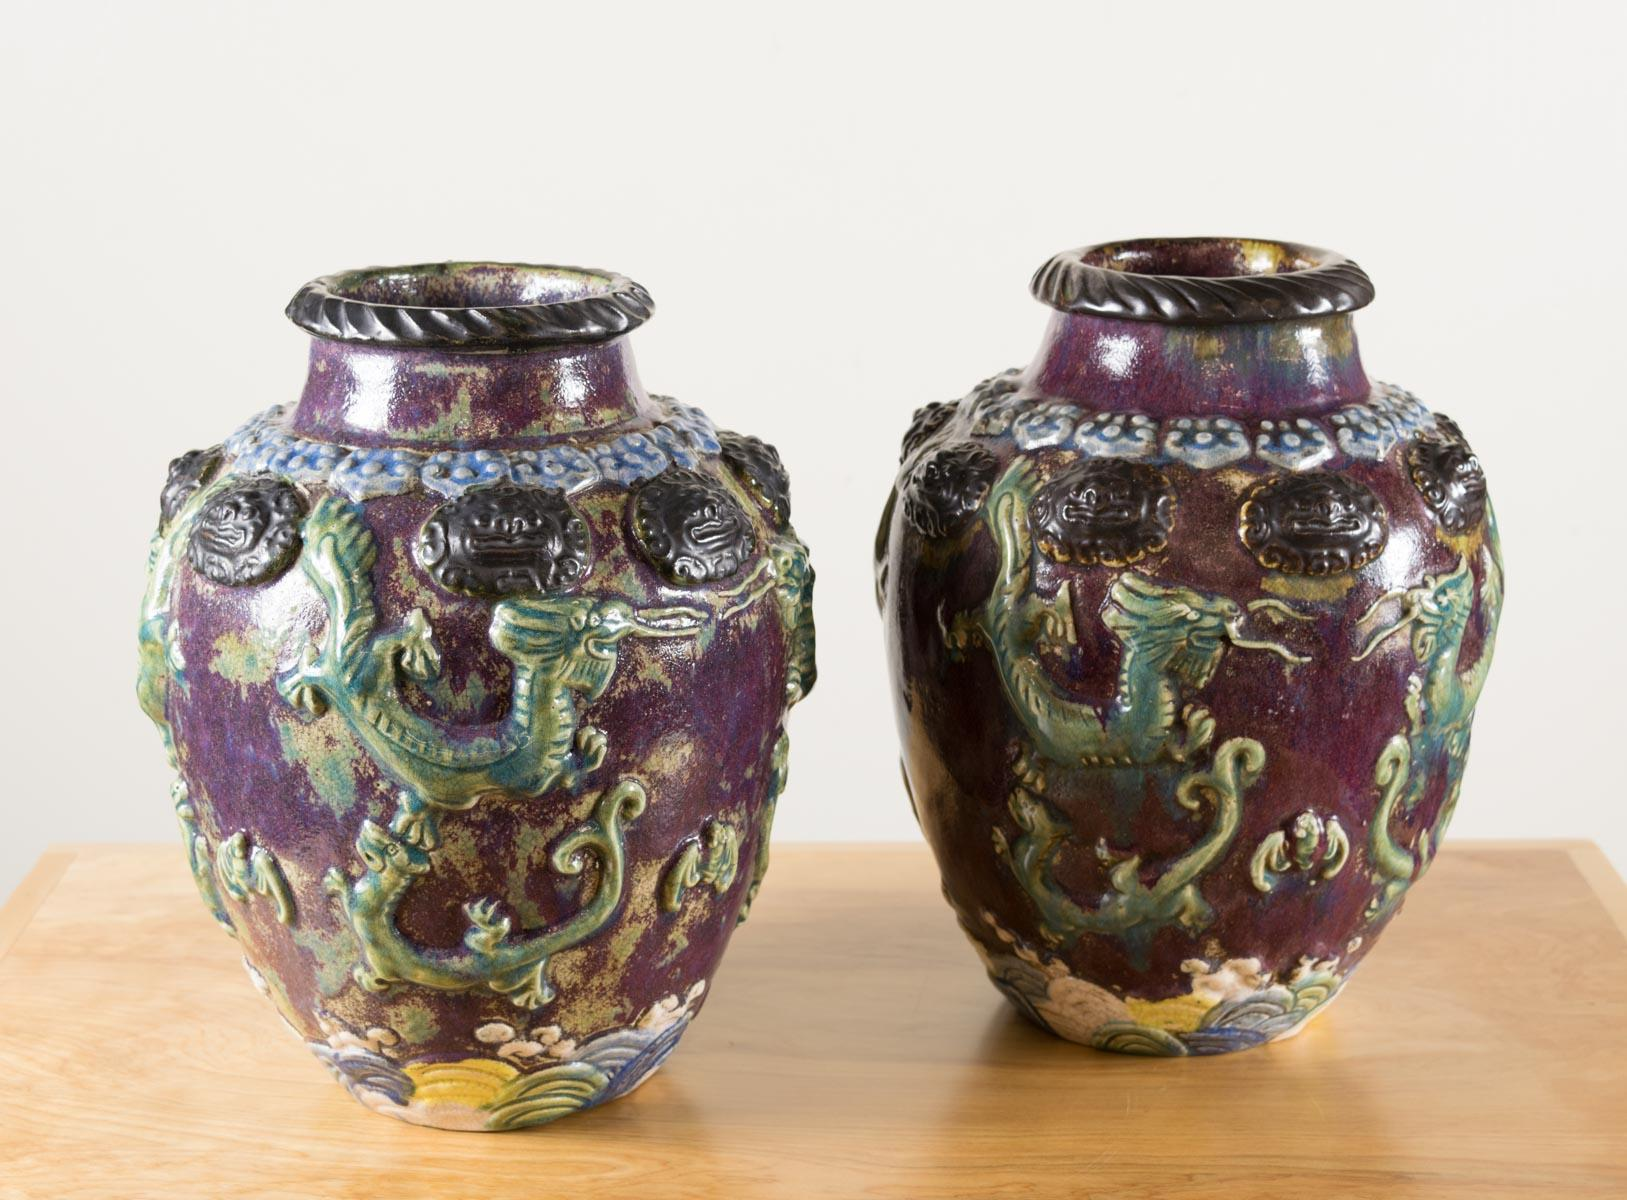 PAIR OF CHINESE POTTERY VASES, with high shoulders